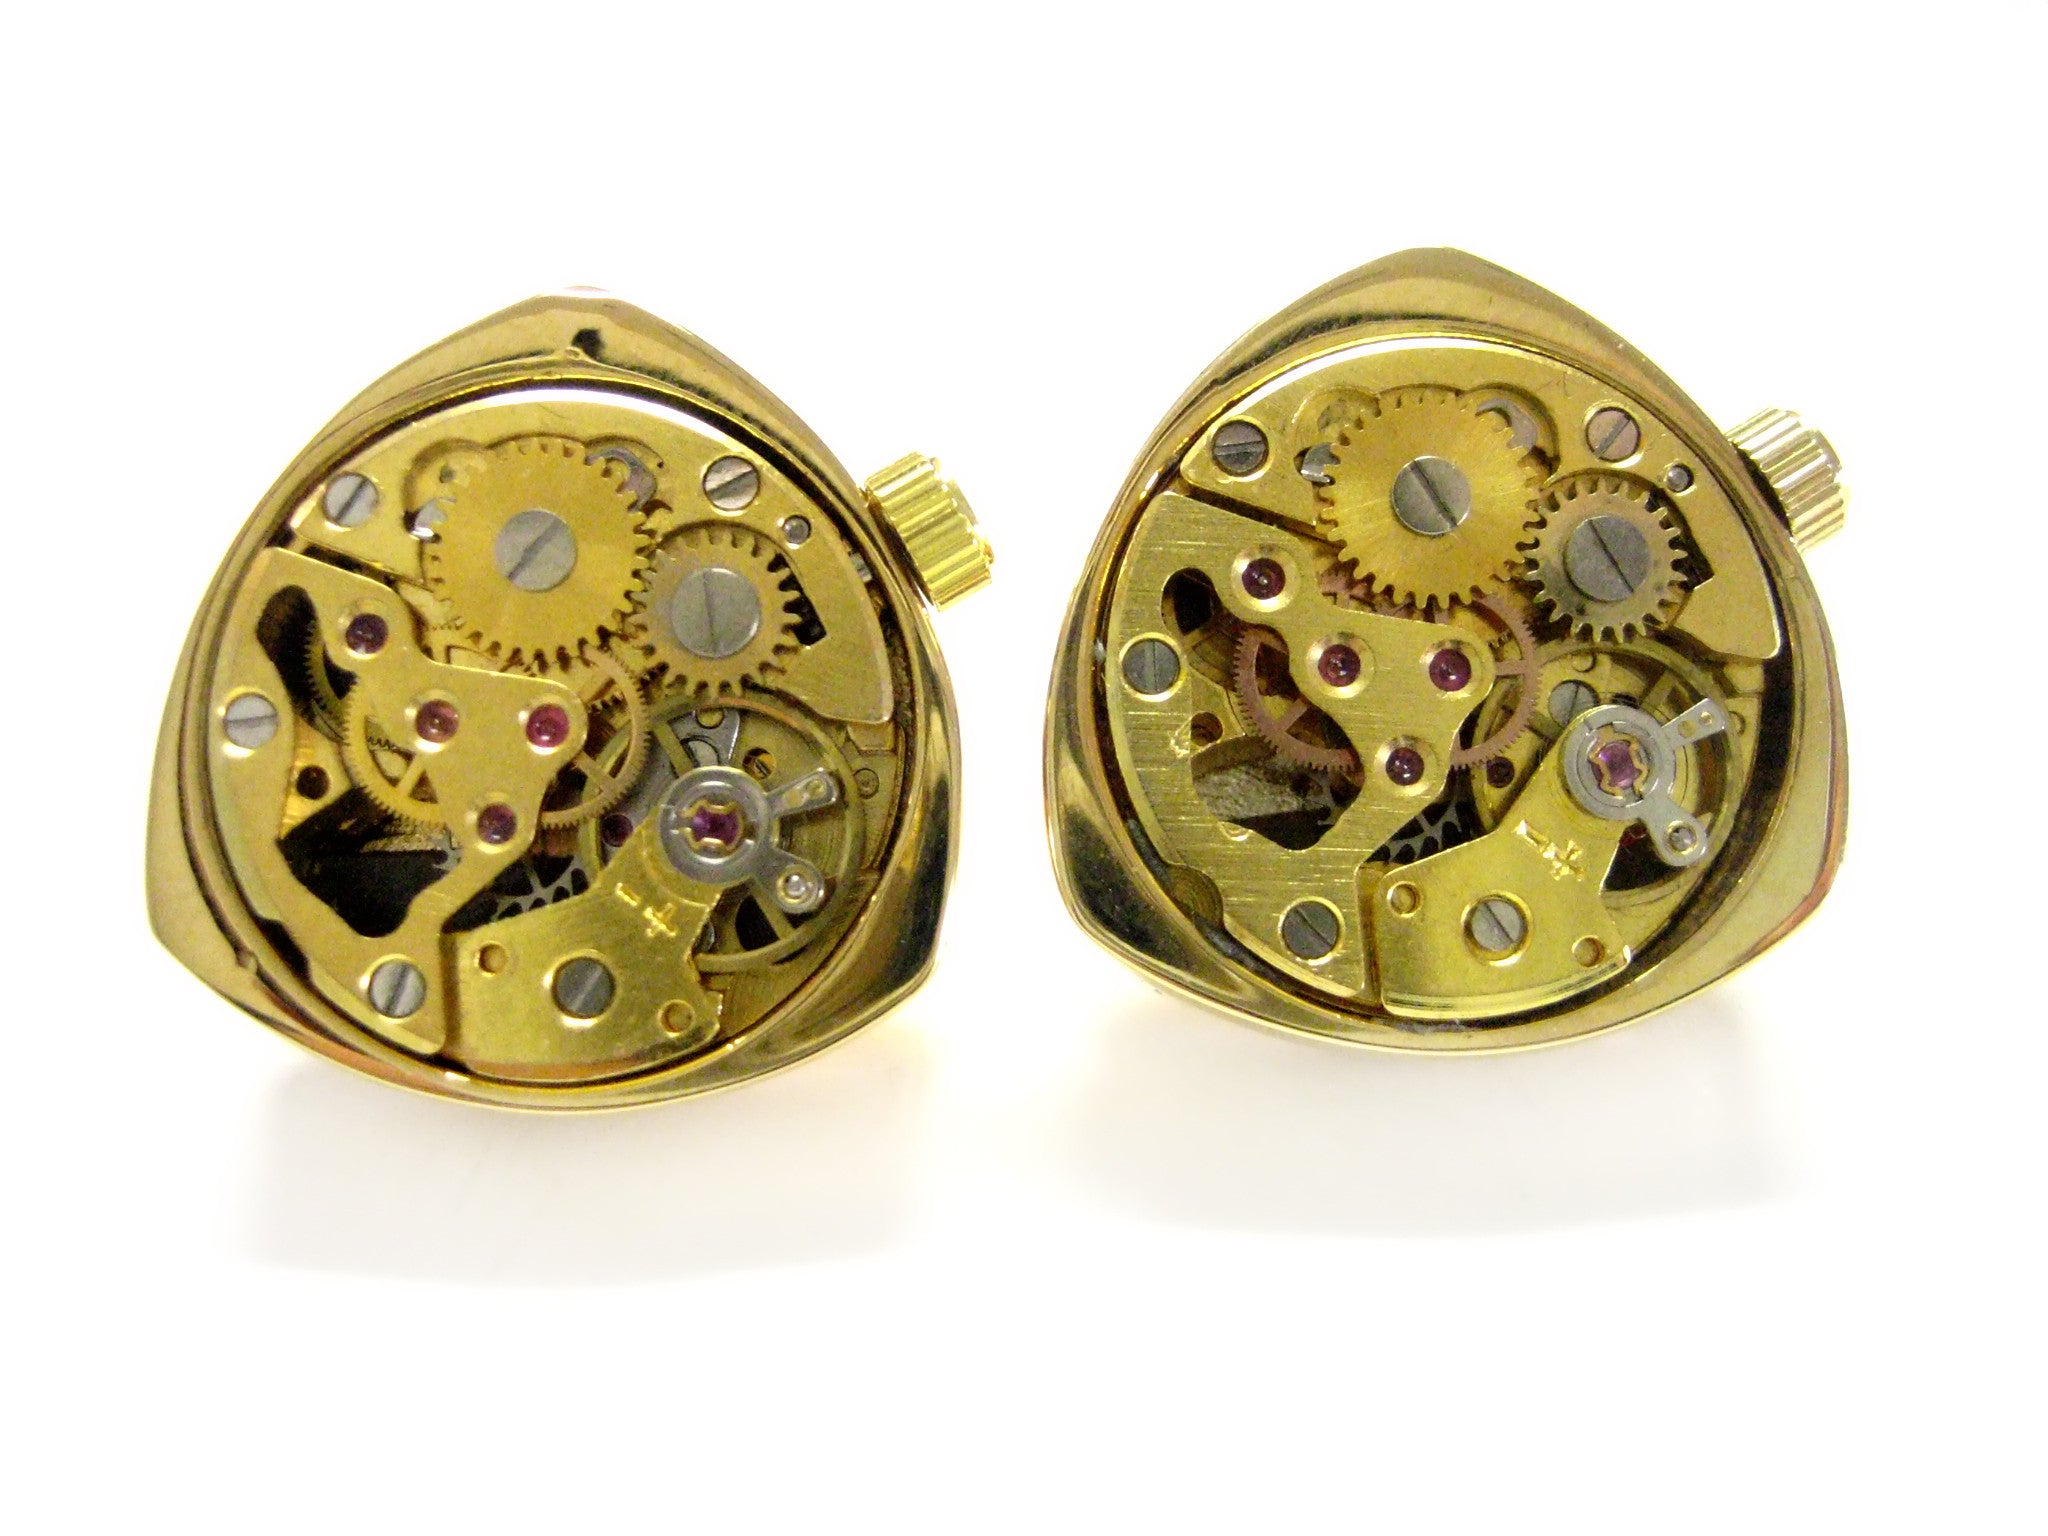 Gold Toned Watch Gear Cufflinks